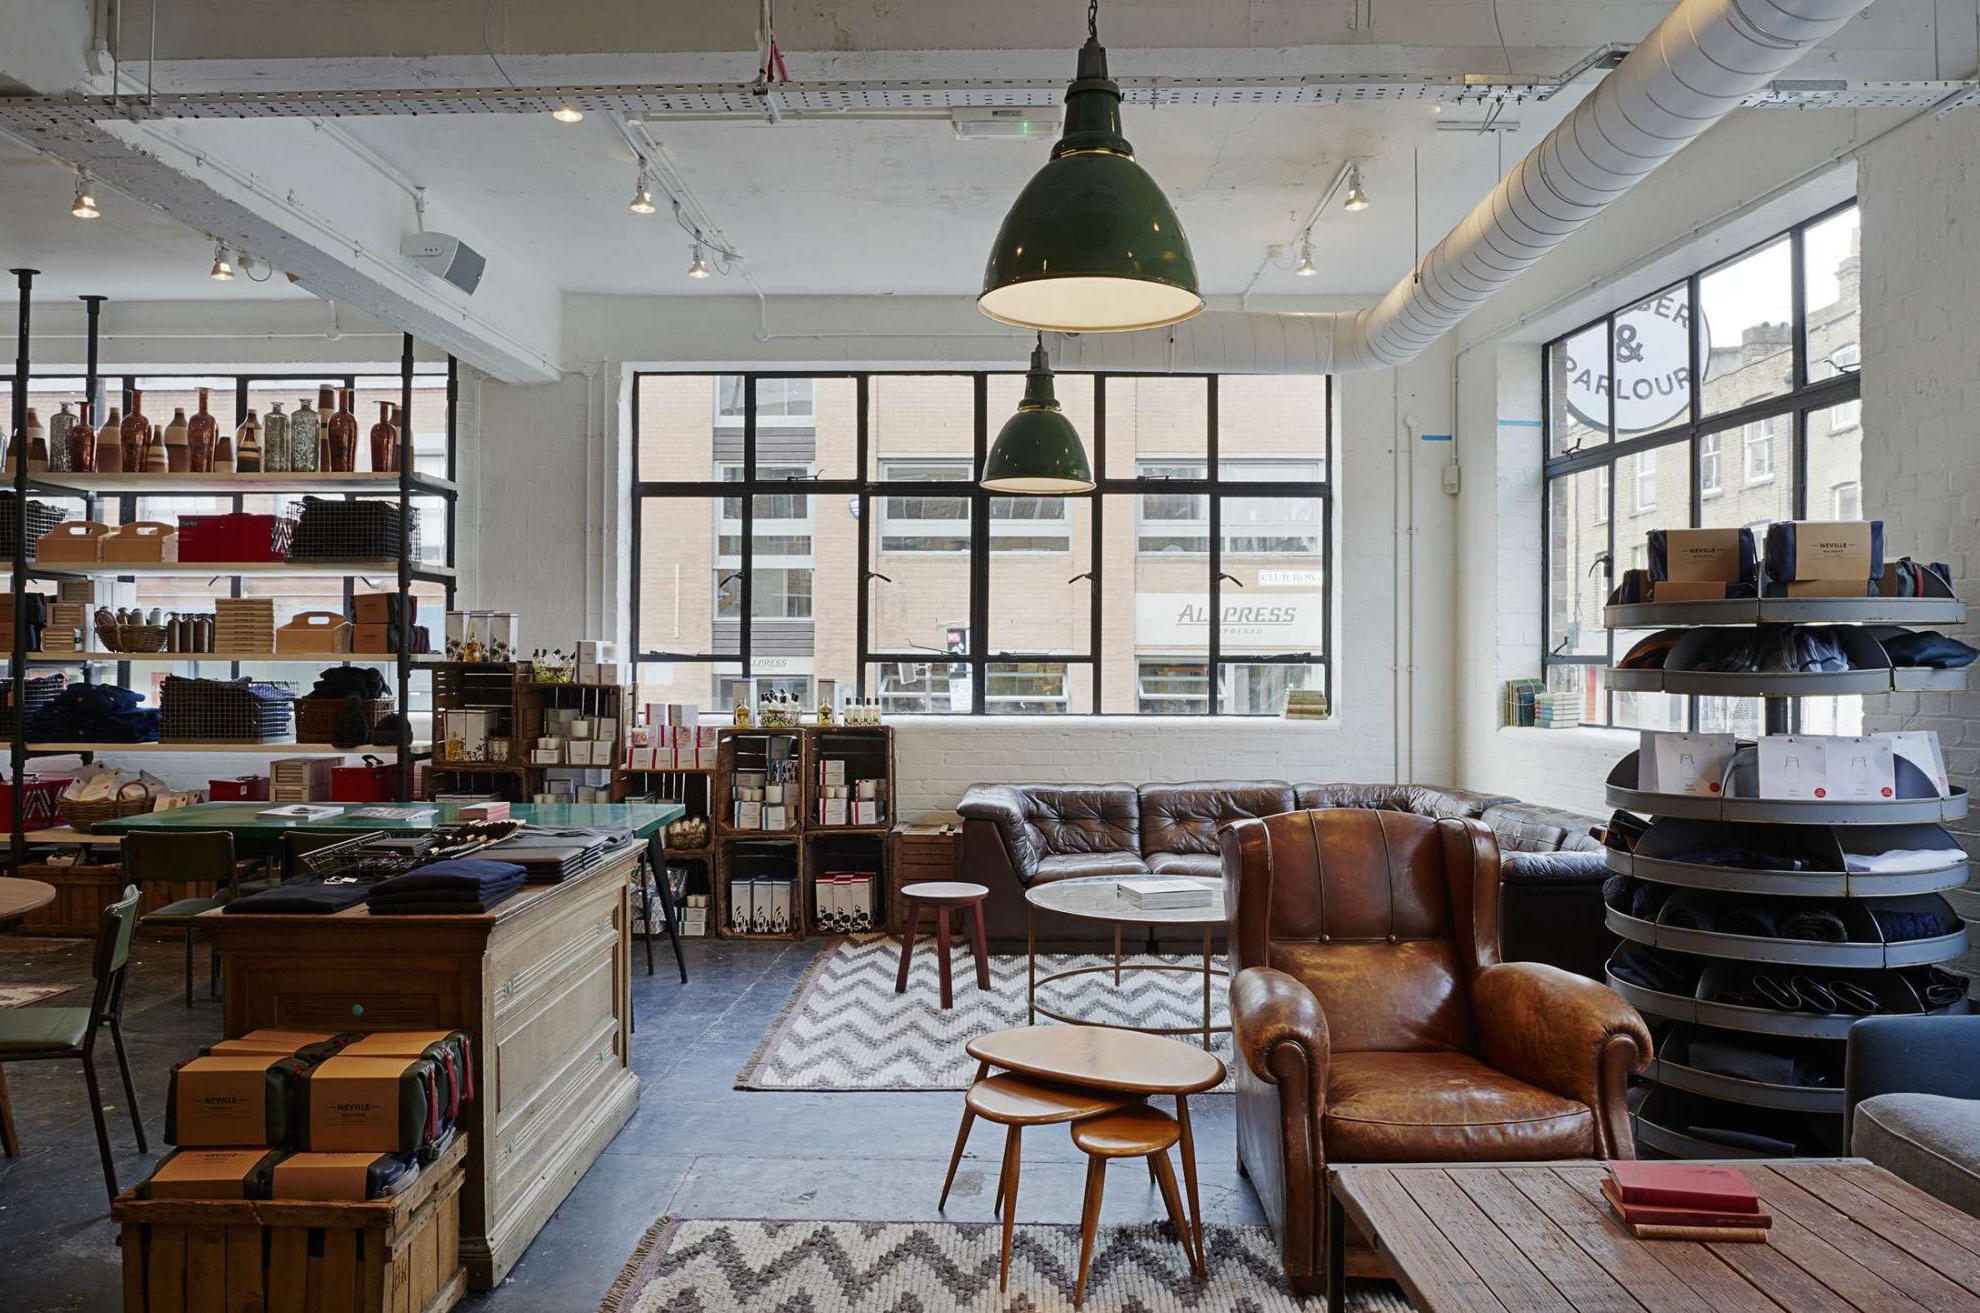 Best Working Cafes in London - Barber & Parlour